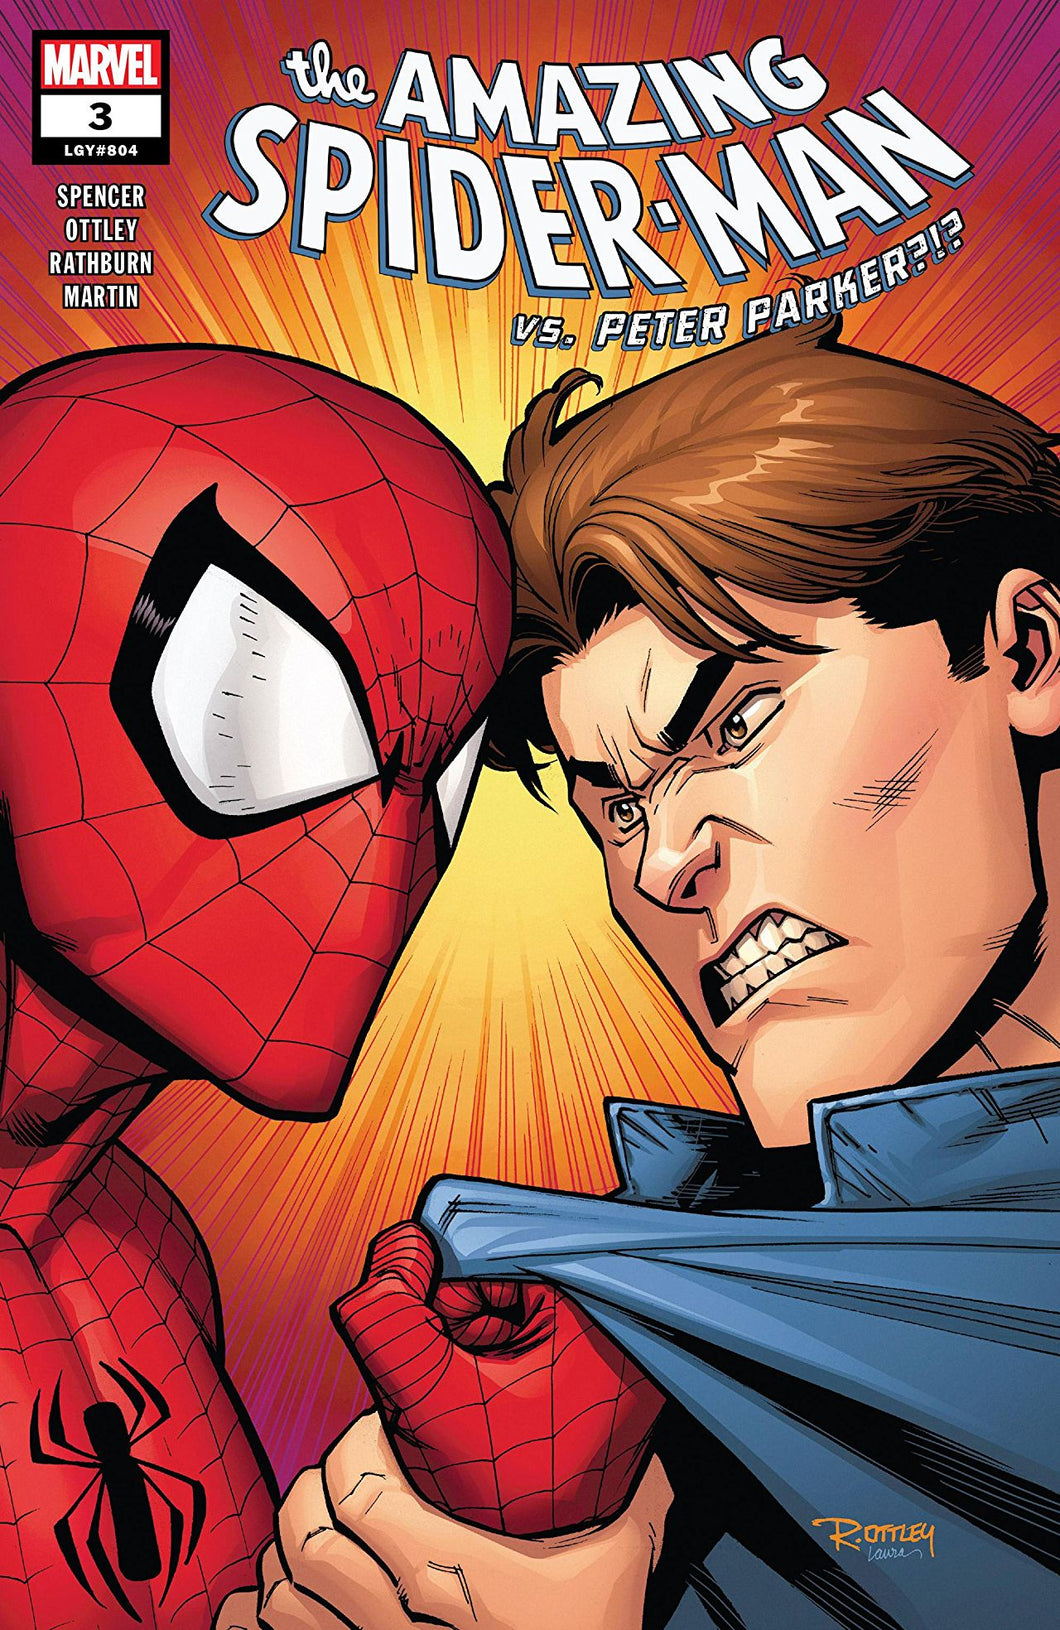 AMAZING SPIDER-MAN #3 (08/08/2018)